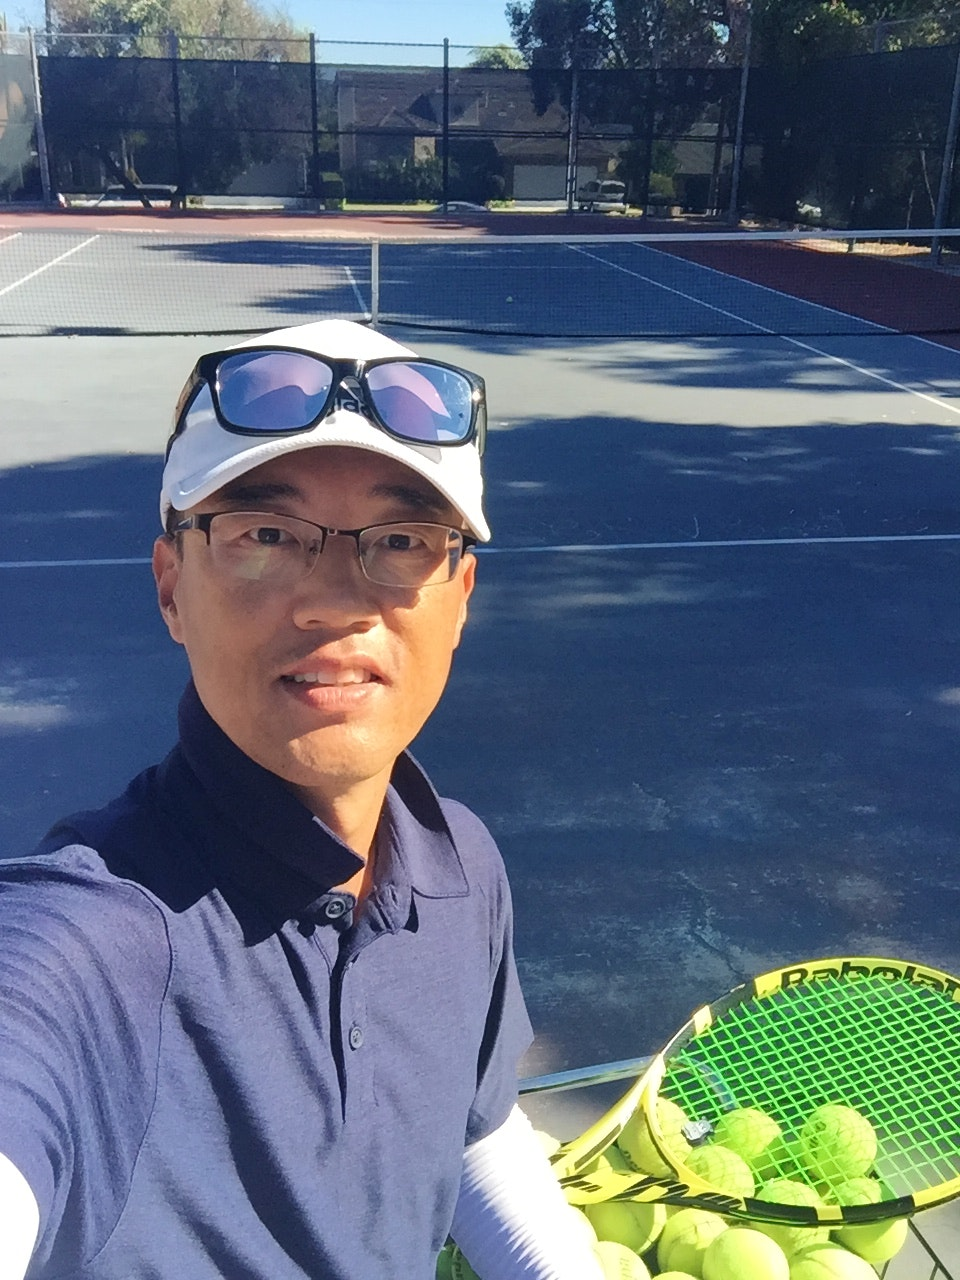 Yitae (. teaches tennis lessons in Torrance , CA